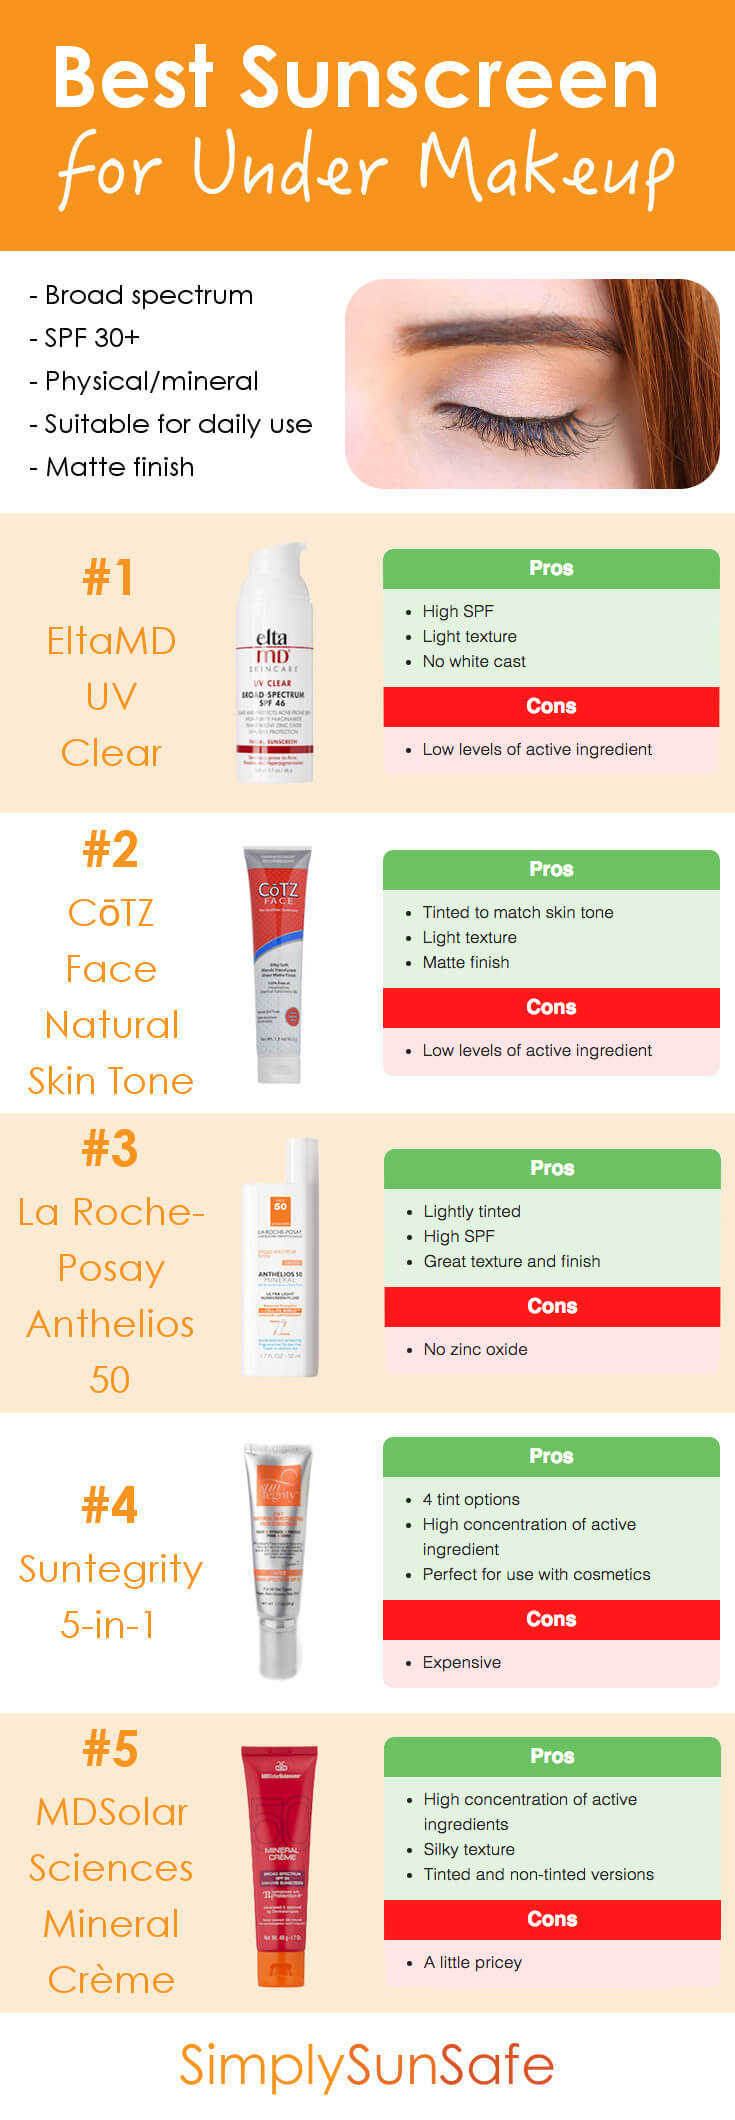 Best Sunscreen for Under Makeup Pinterest